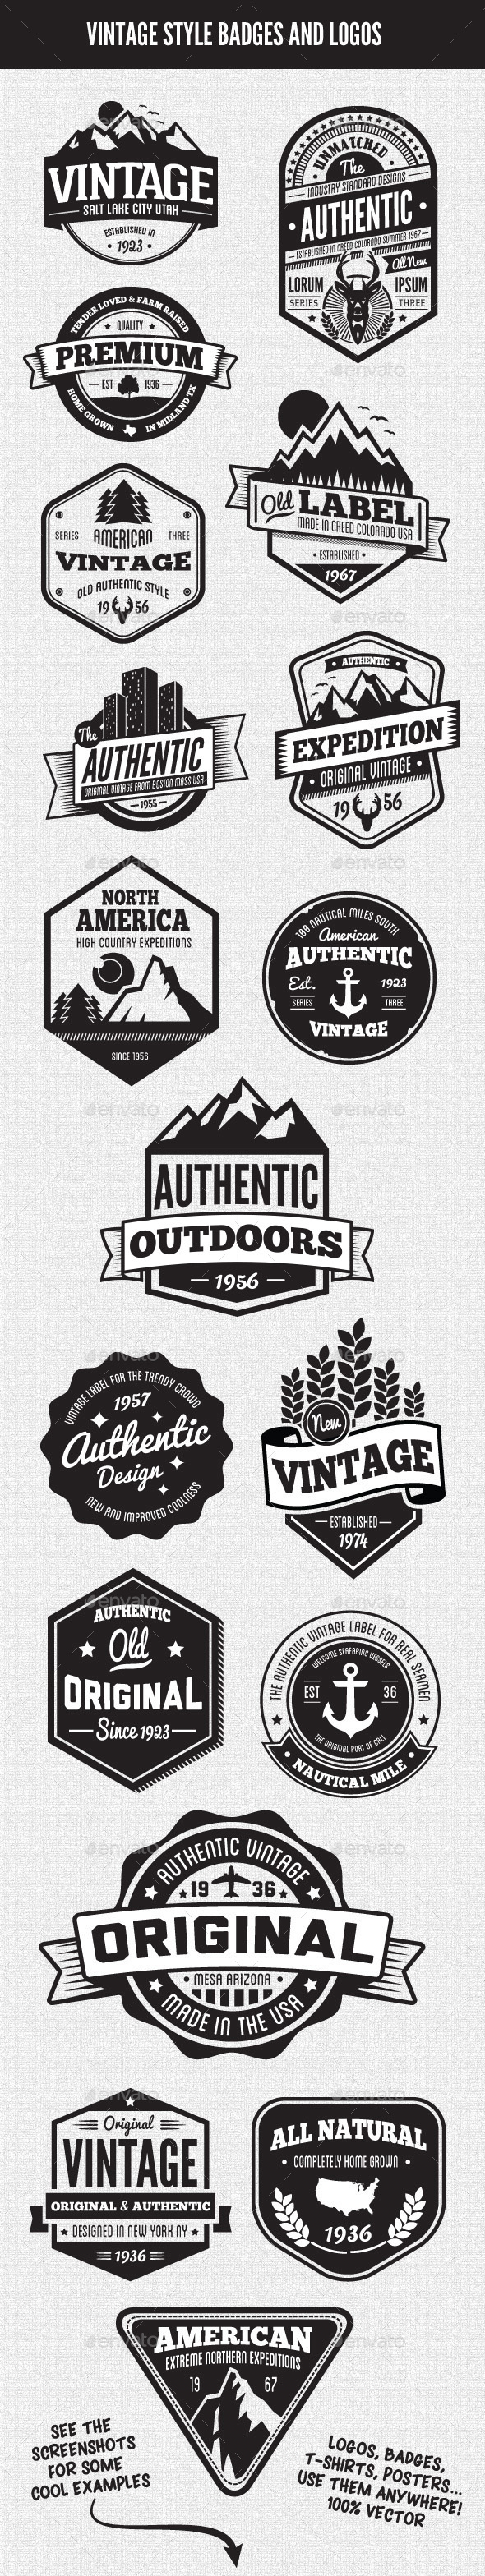 Vintage Style Badges and Logos Vol 3